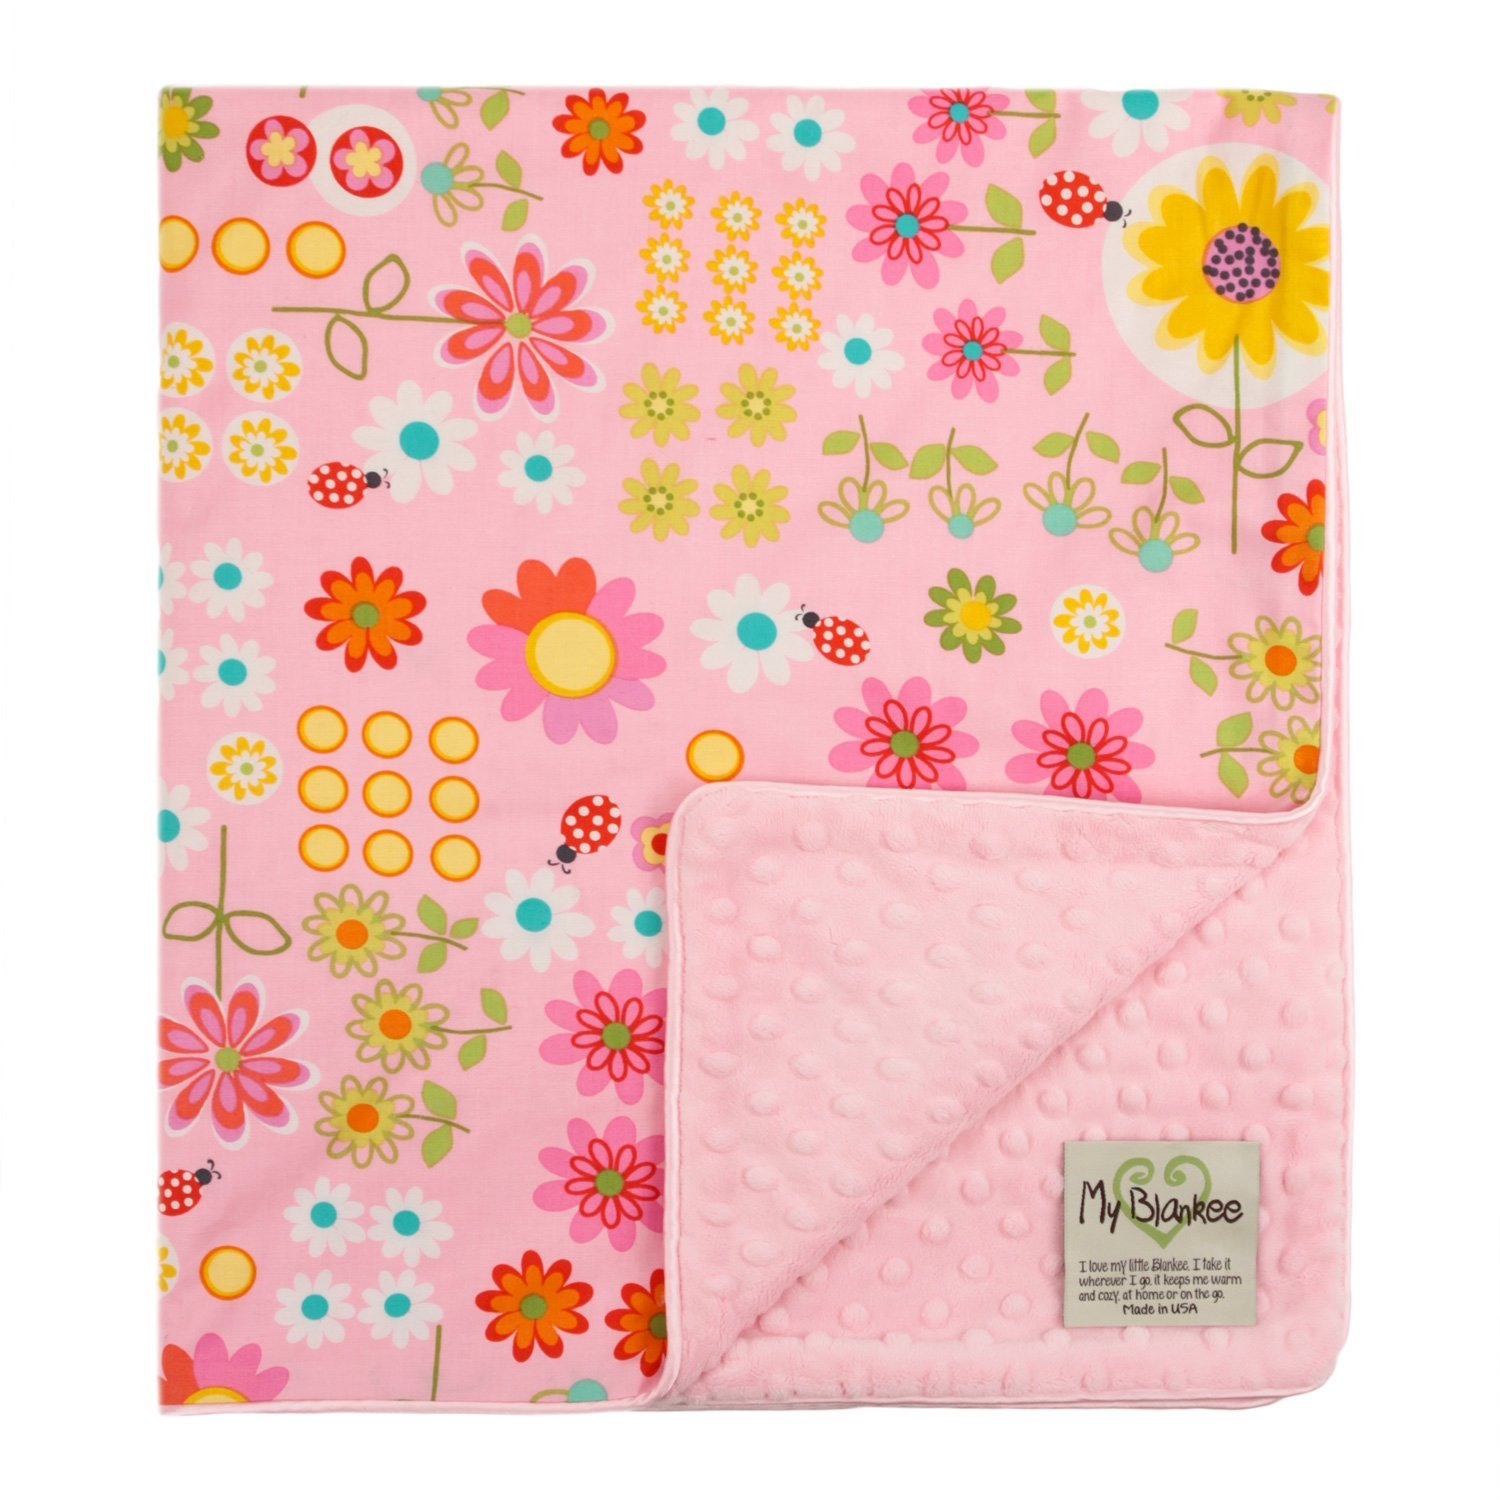 My Blankee Daisy Dance Organic Cotton Pink w/ Minky Dot Pink Baby Blanket, 30' X 35'